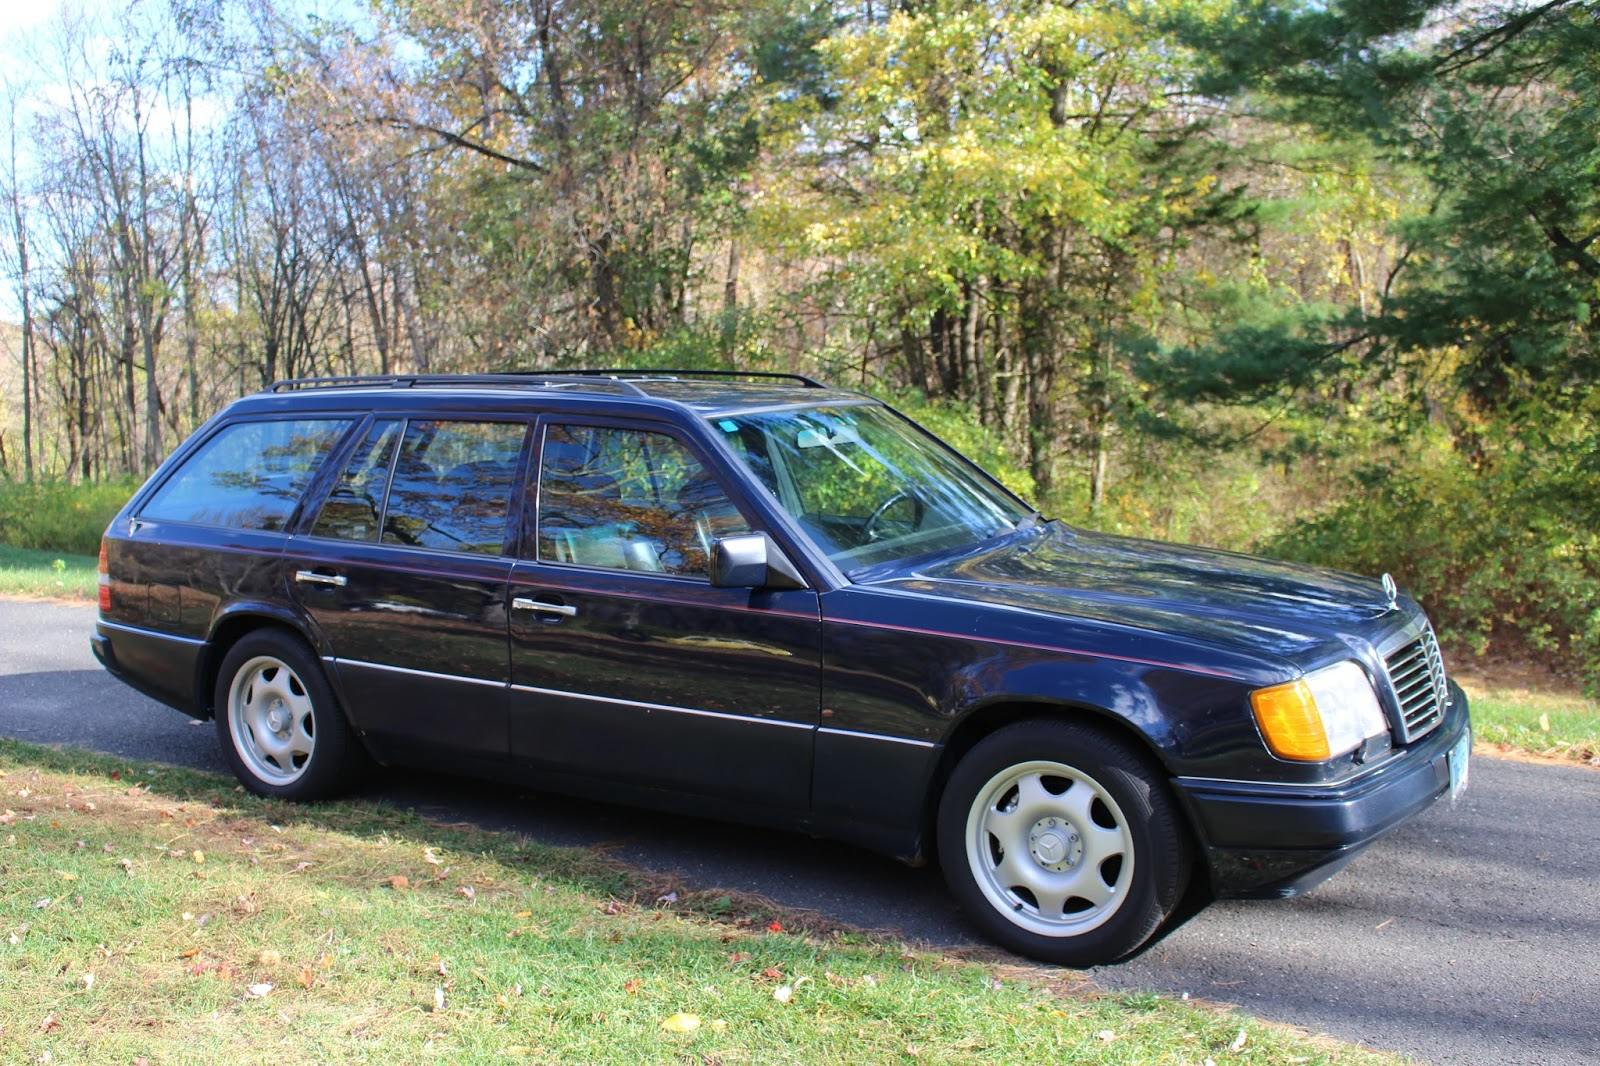 Daily turismo amg power 1995 mercedes e320 wagon for Mercedes benz e320 wagon